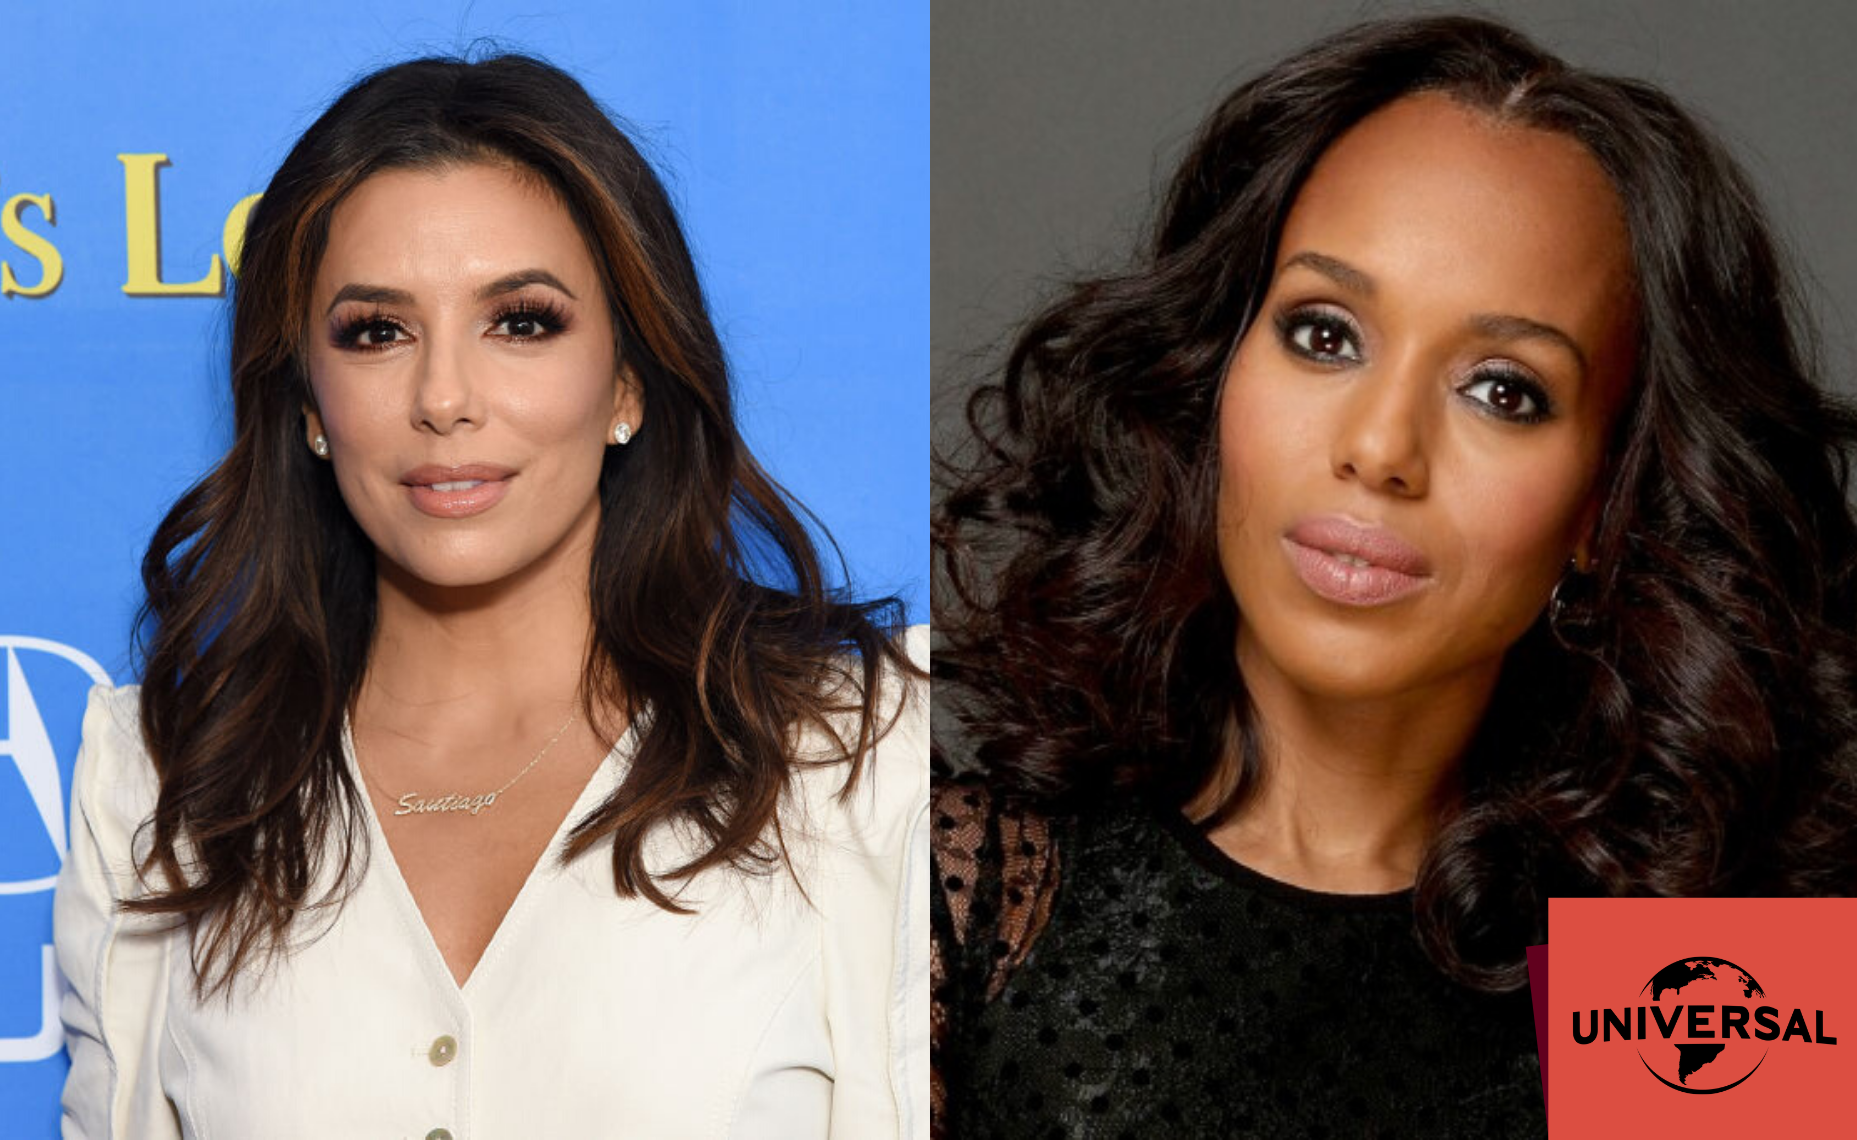 24-7, universal pictures, eva longoria, kerry washington, diversity, hollywood, inclusive, marketing, upcoming productions, tv shows, films